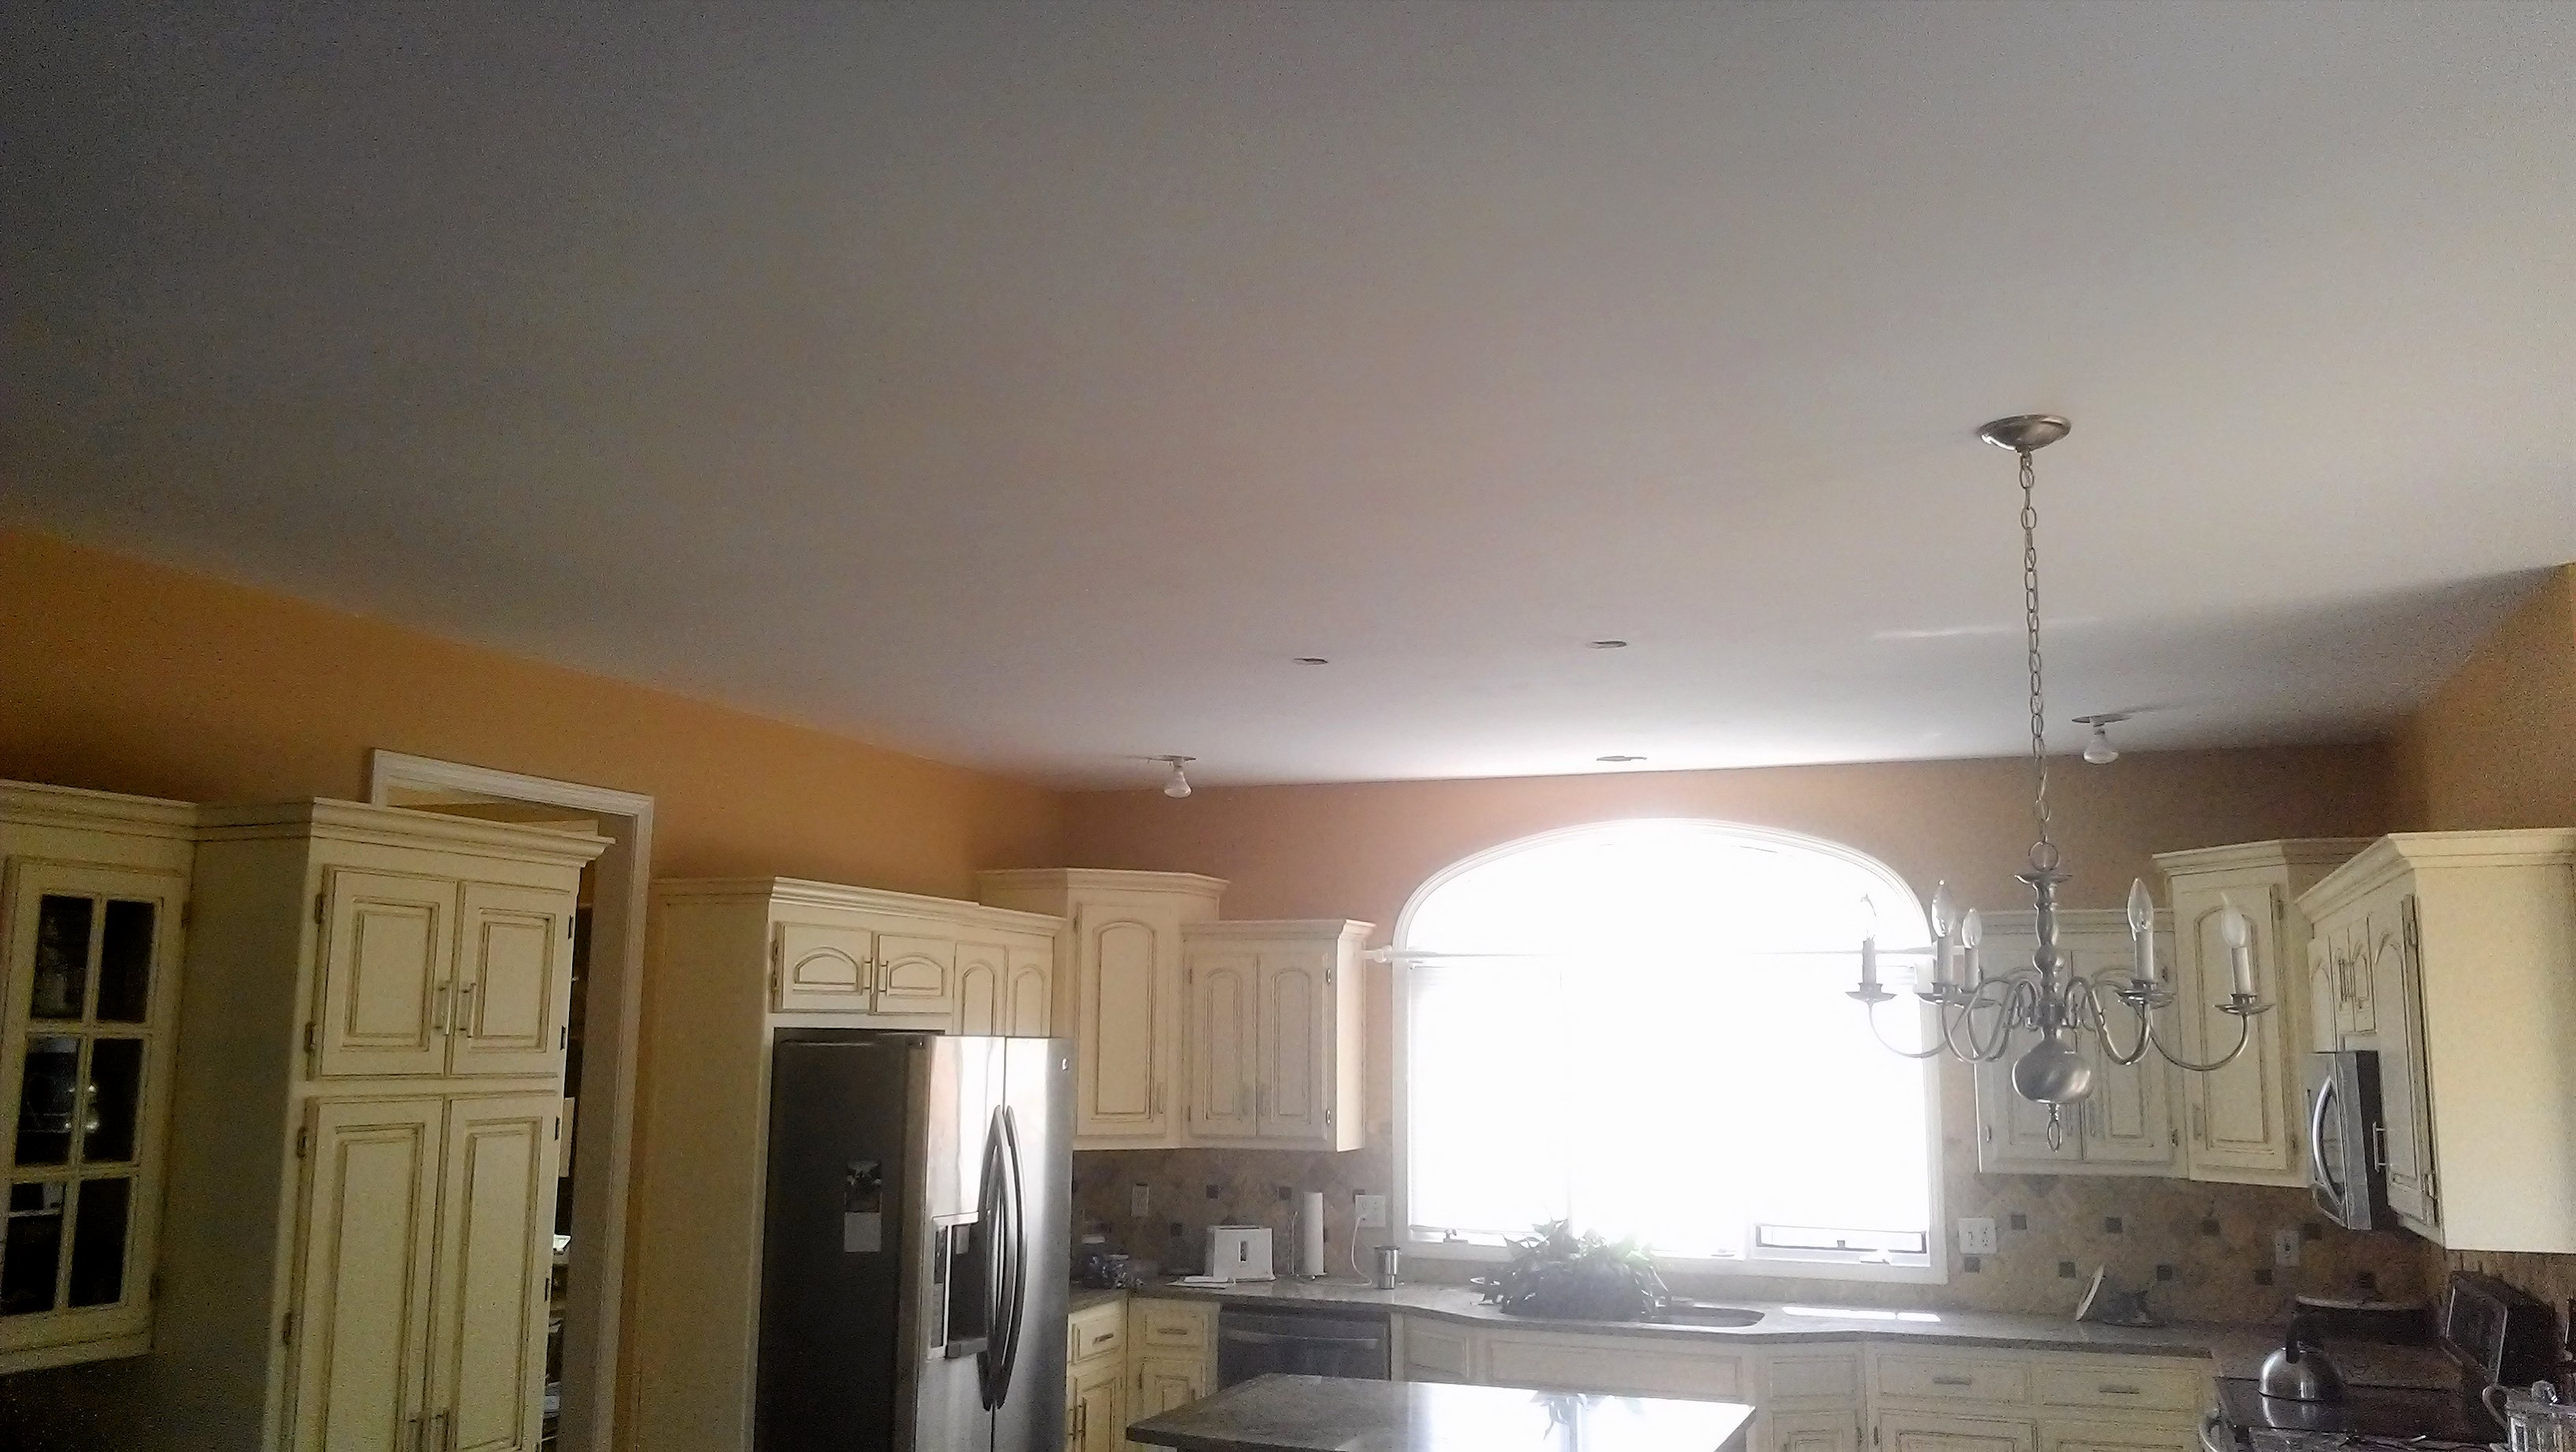 drywall from popcorn removal orange project ceiling jacksonville ceilings specialist park